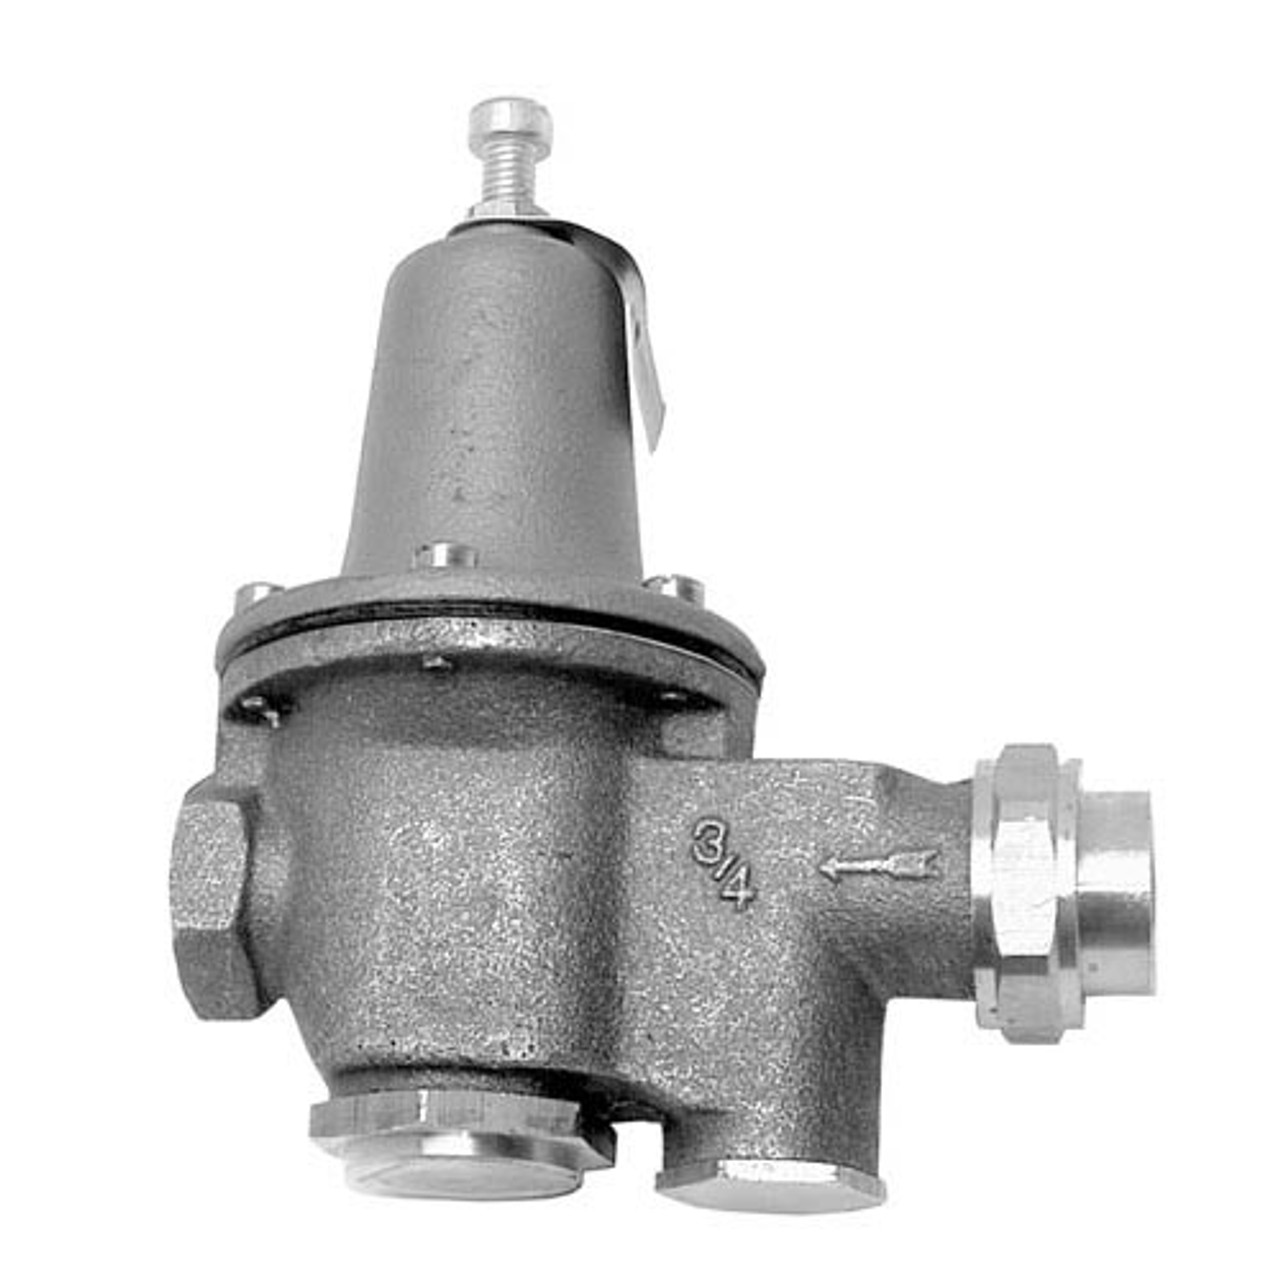 ADAMATION 75-6876-140 PRESSURE REDUCING VALVE